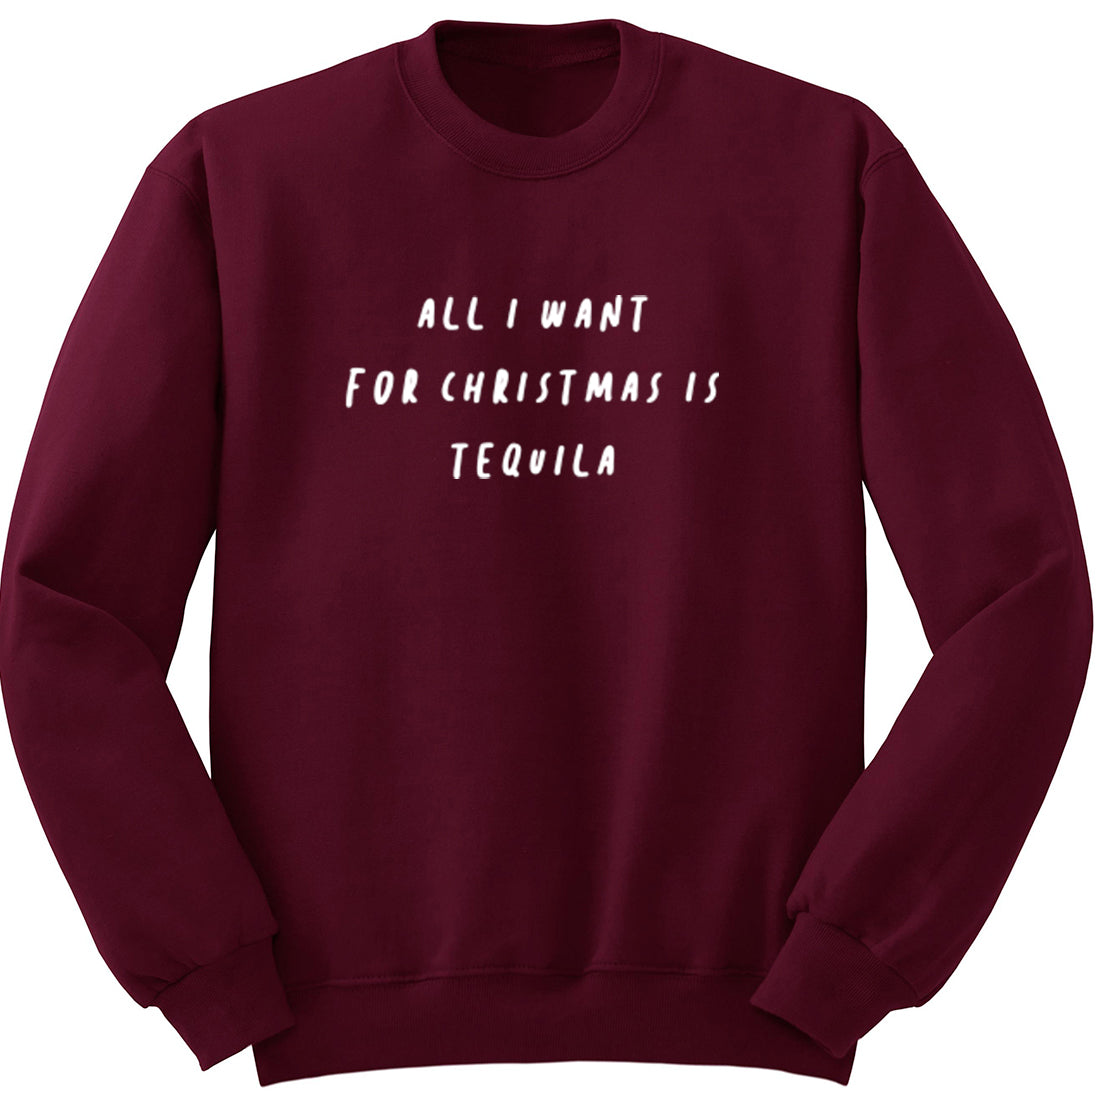 All I Want For Christmas Is Tequila Unisex Jumper K2476 - Illustrated Identity Ltd.